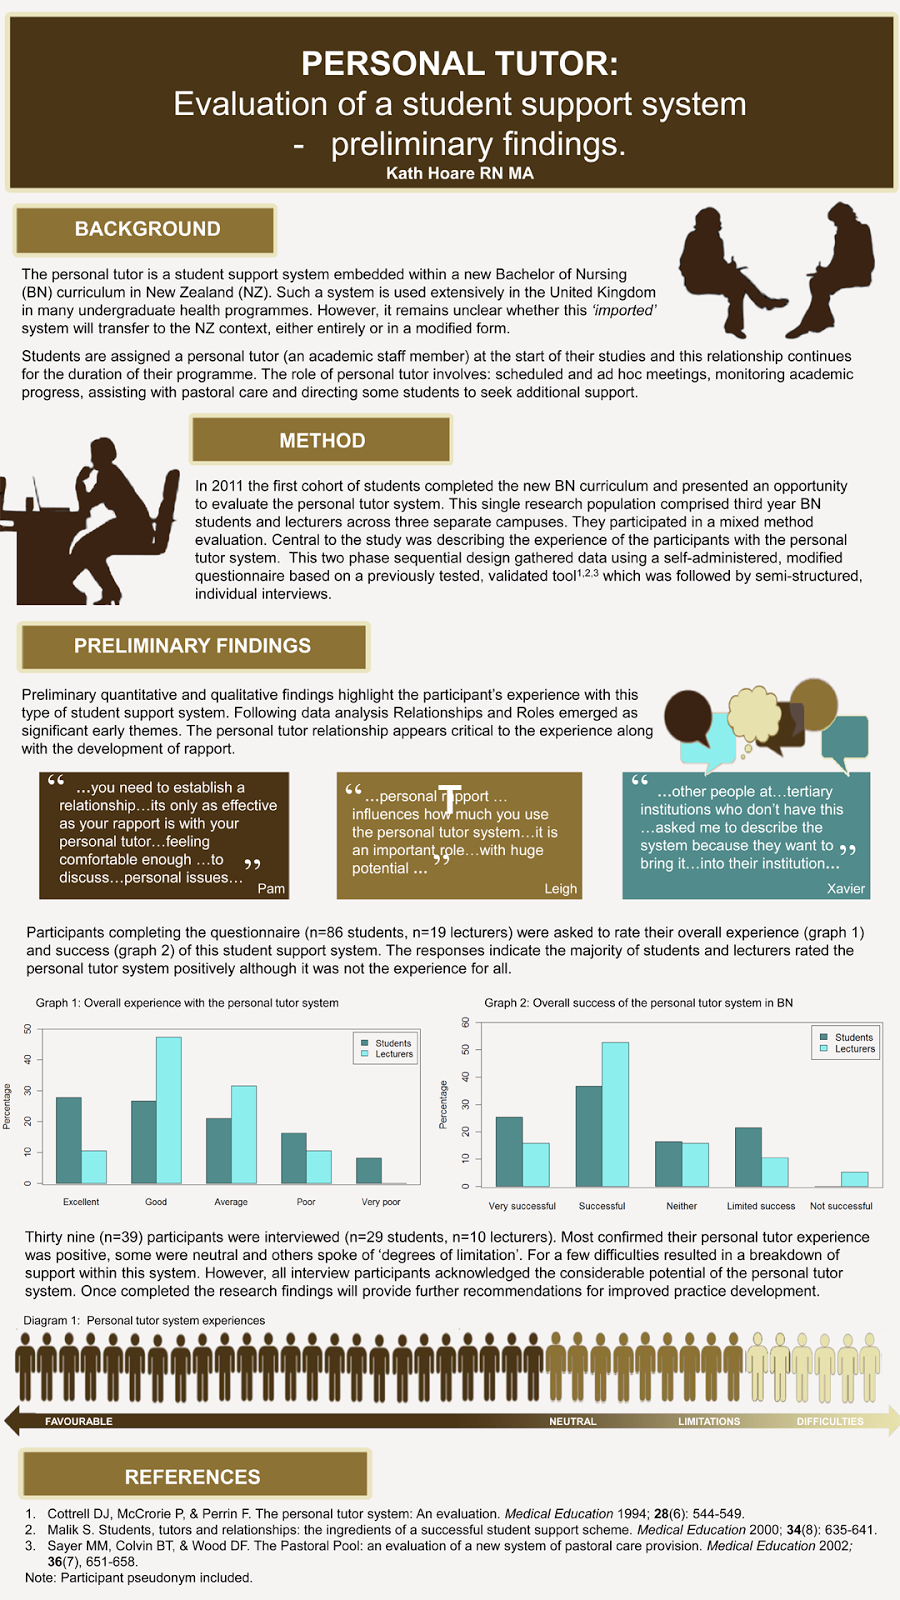 jealousy interpersonal relationship and successful student Studies examining social networking addiction and interpersonal relationships undergraduate students and leading to jealousy and relationship.